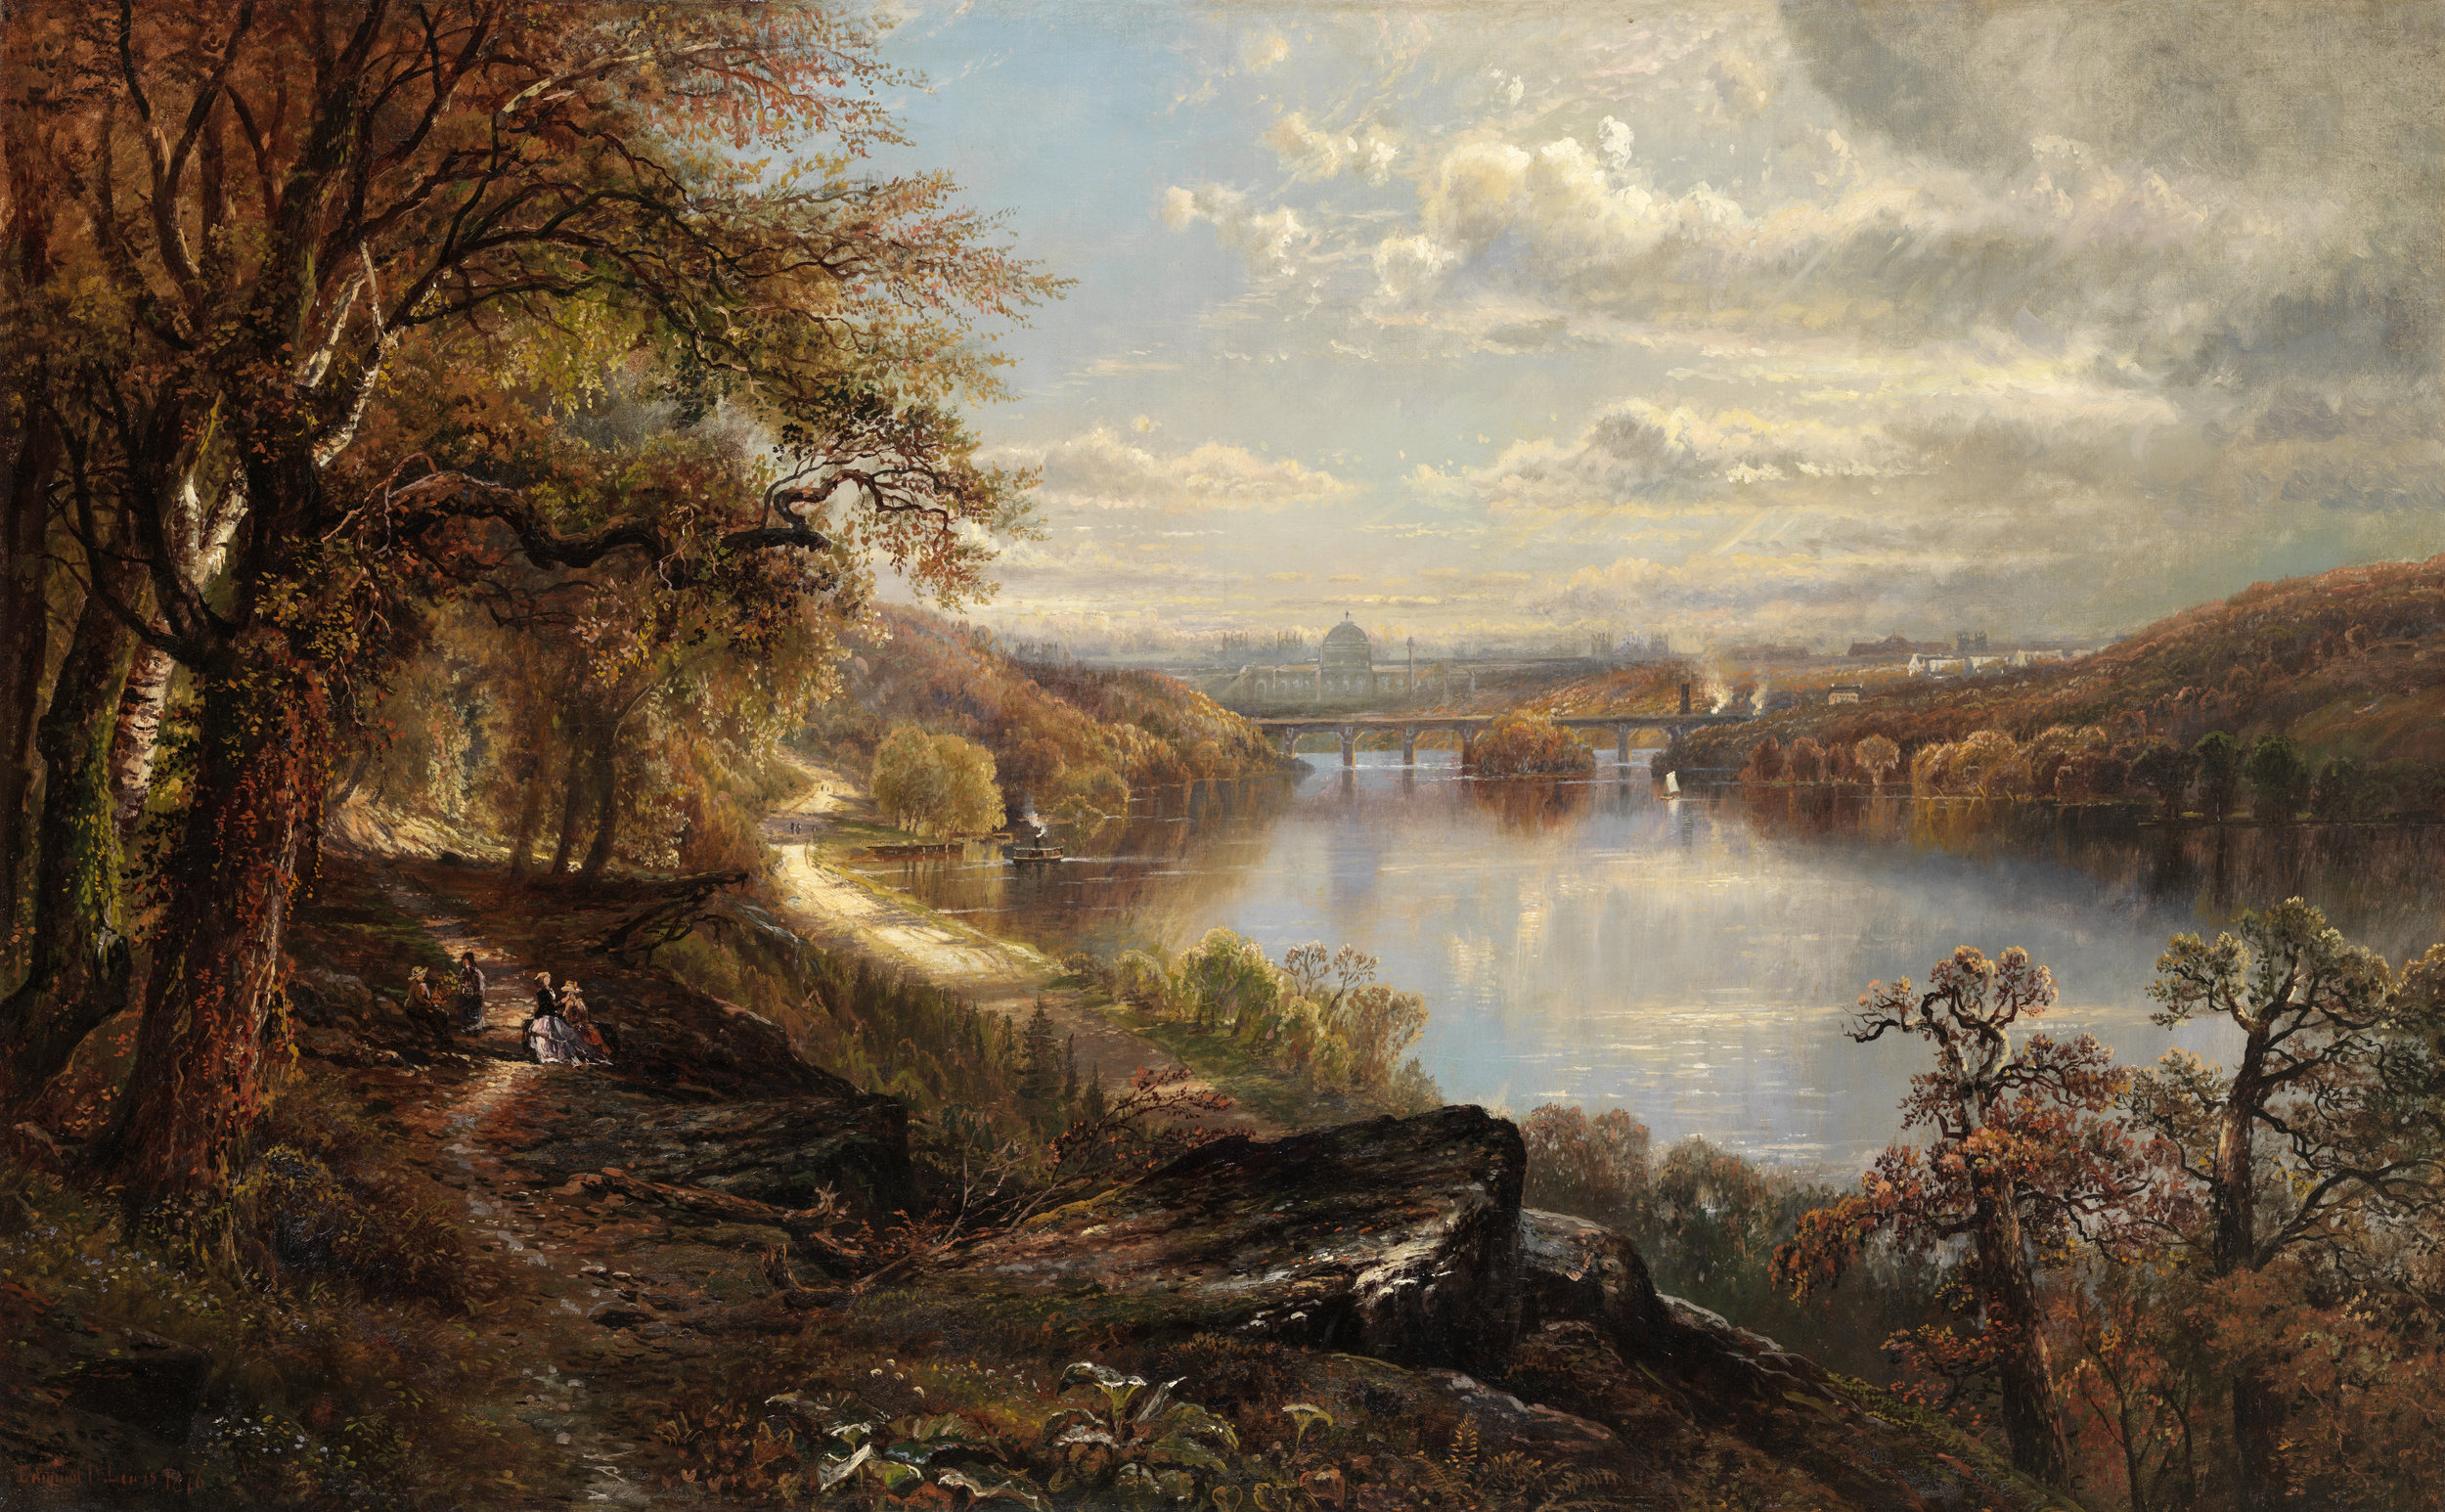 Edmund Darch Lewis (1835-1910)  View of the Schuylkill River with Memorial Hall in the background, 1876